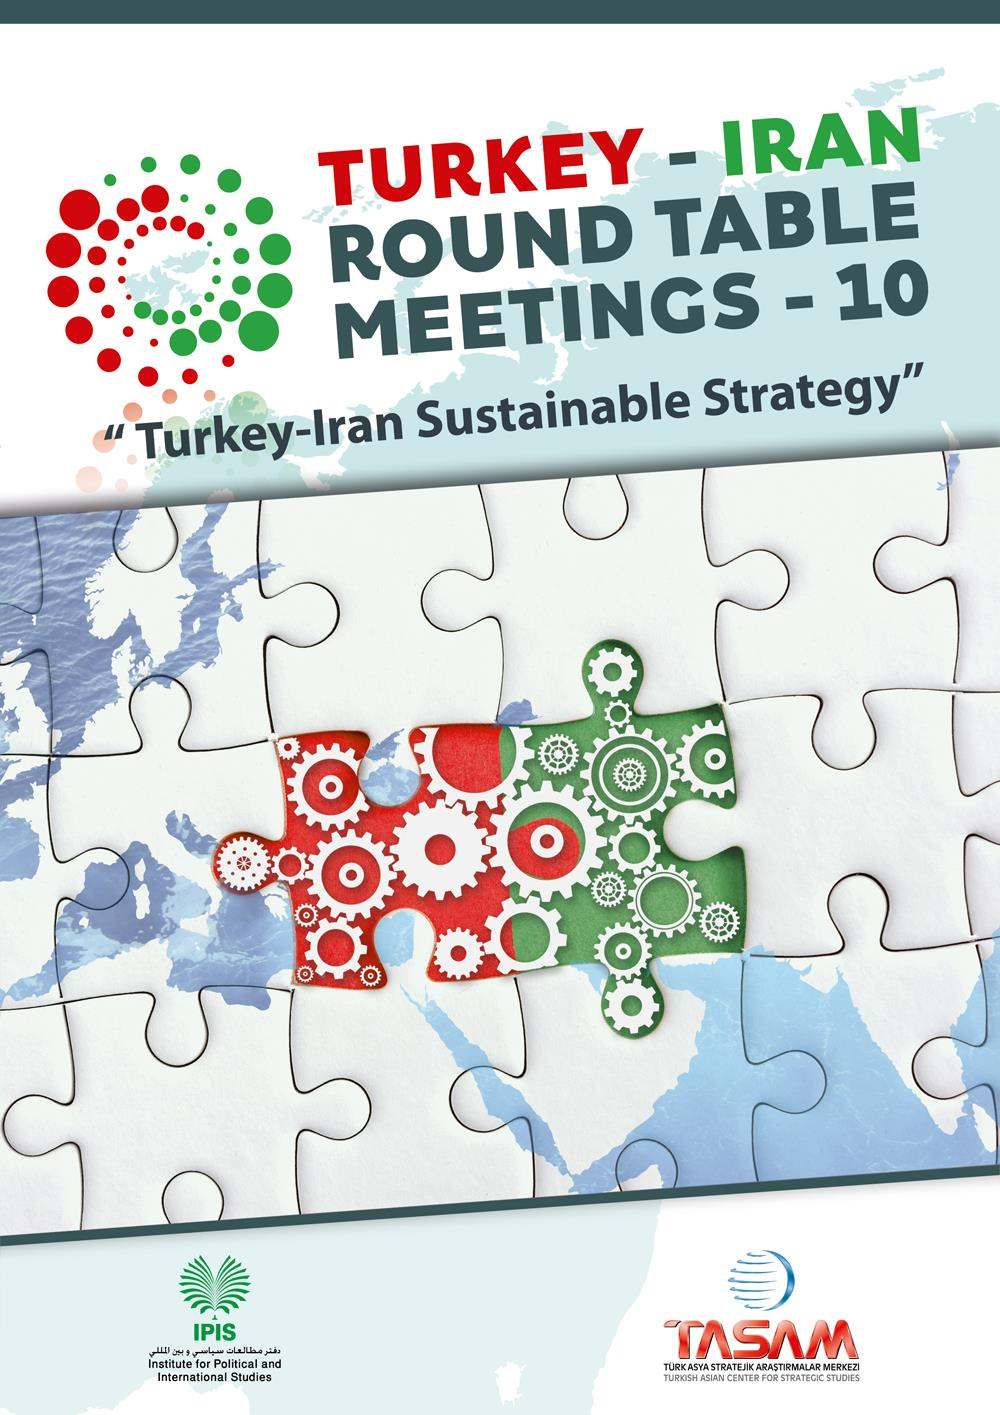 Turkey - Iran Round Table Meetings - 10